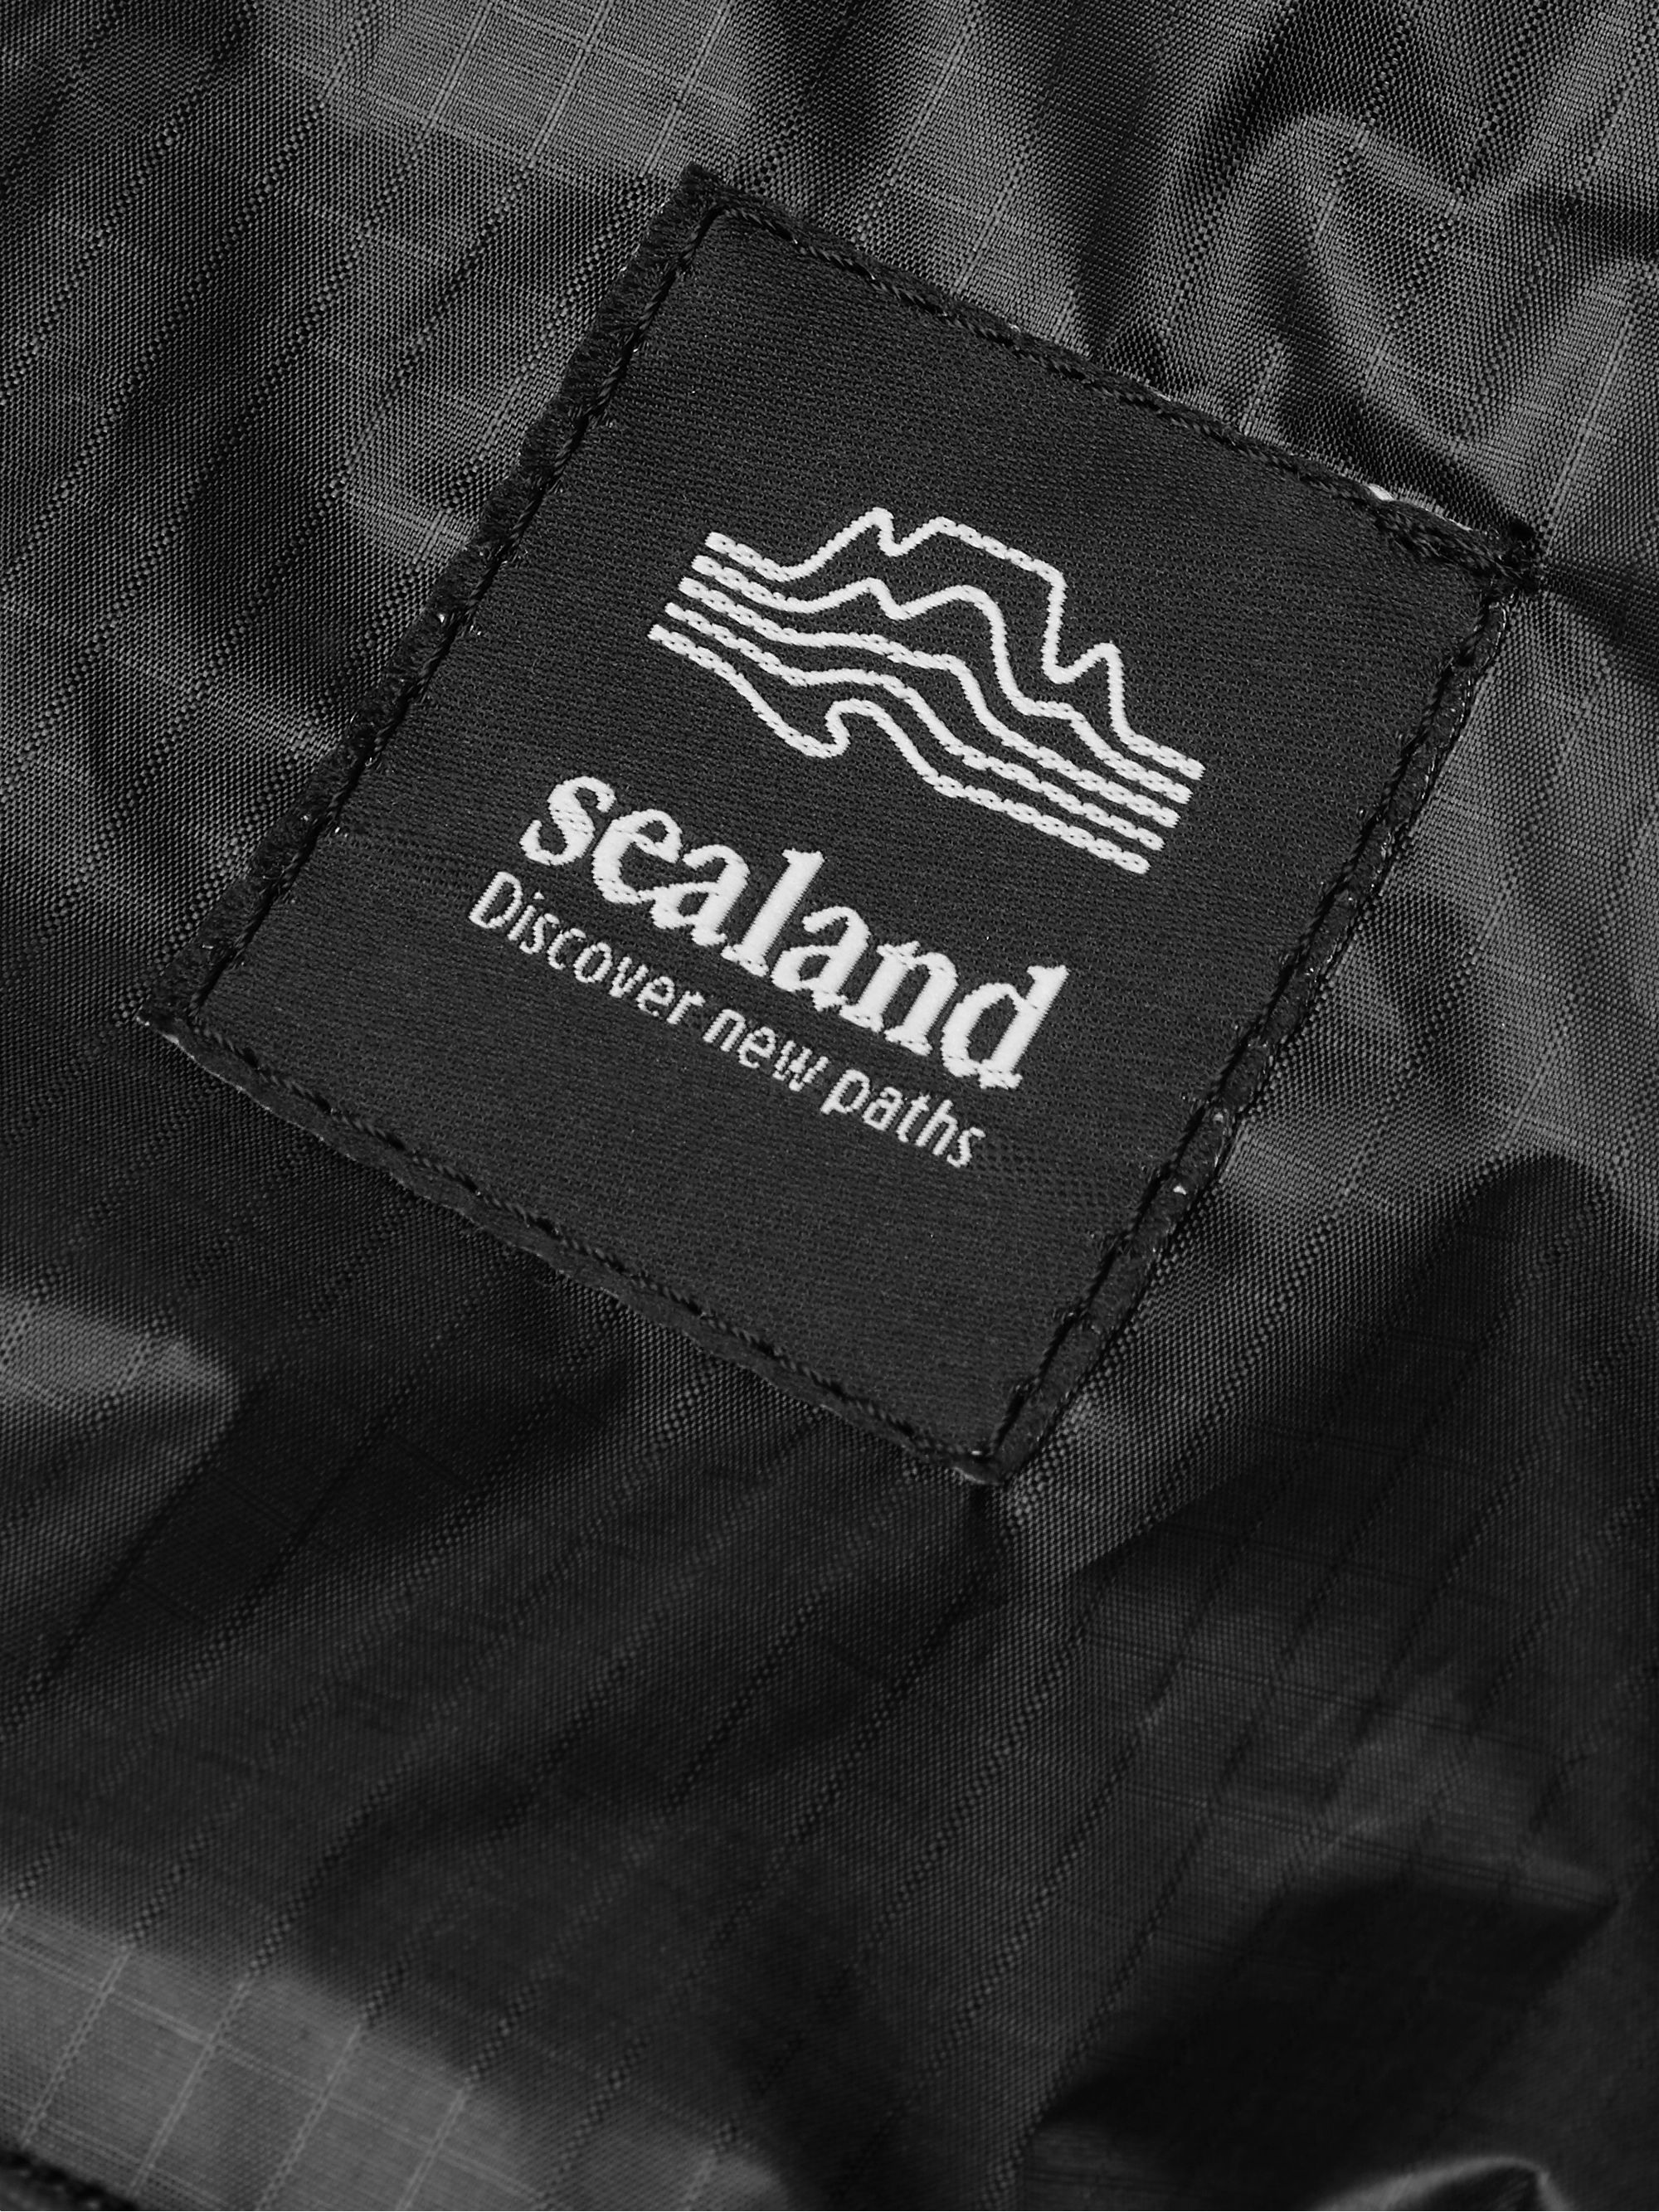 Sealand Gear Buddy Spinnaker, Ripstop and Canvas Backpack